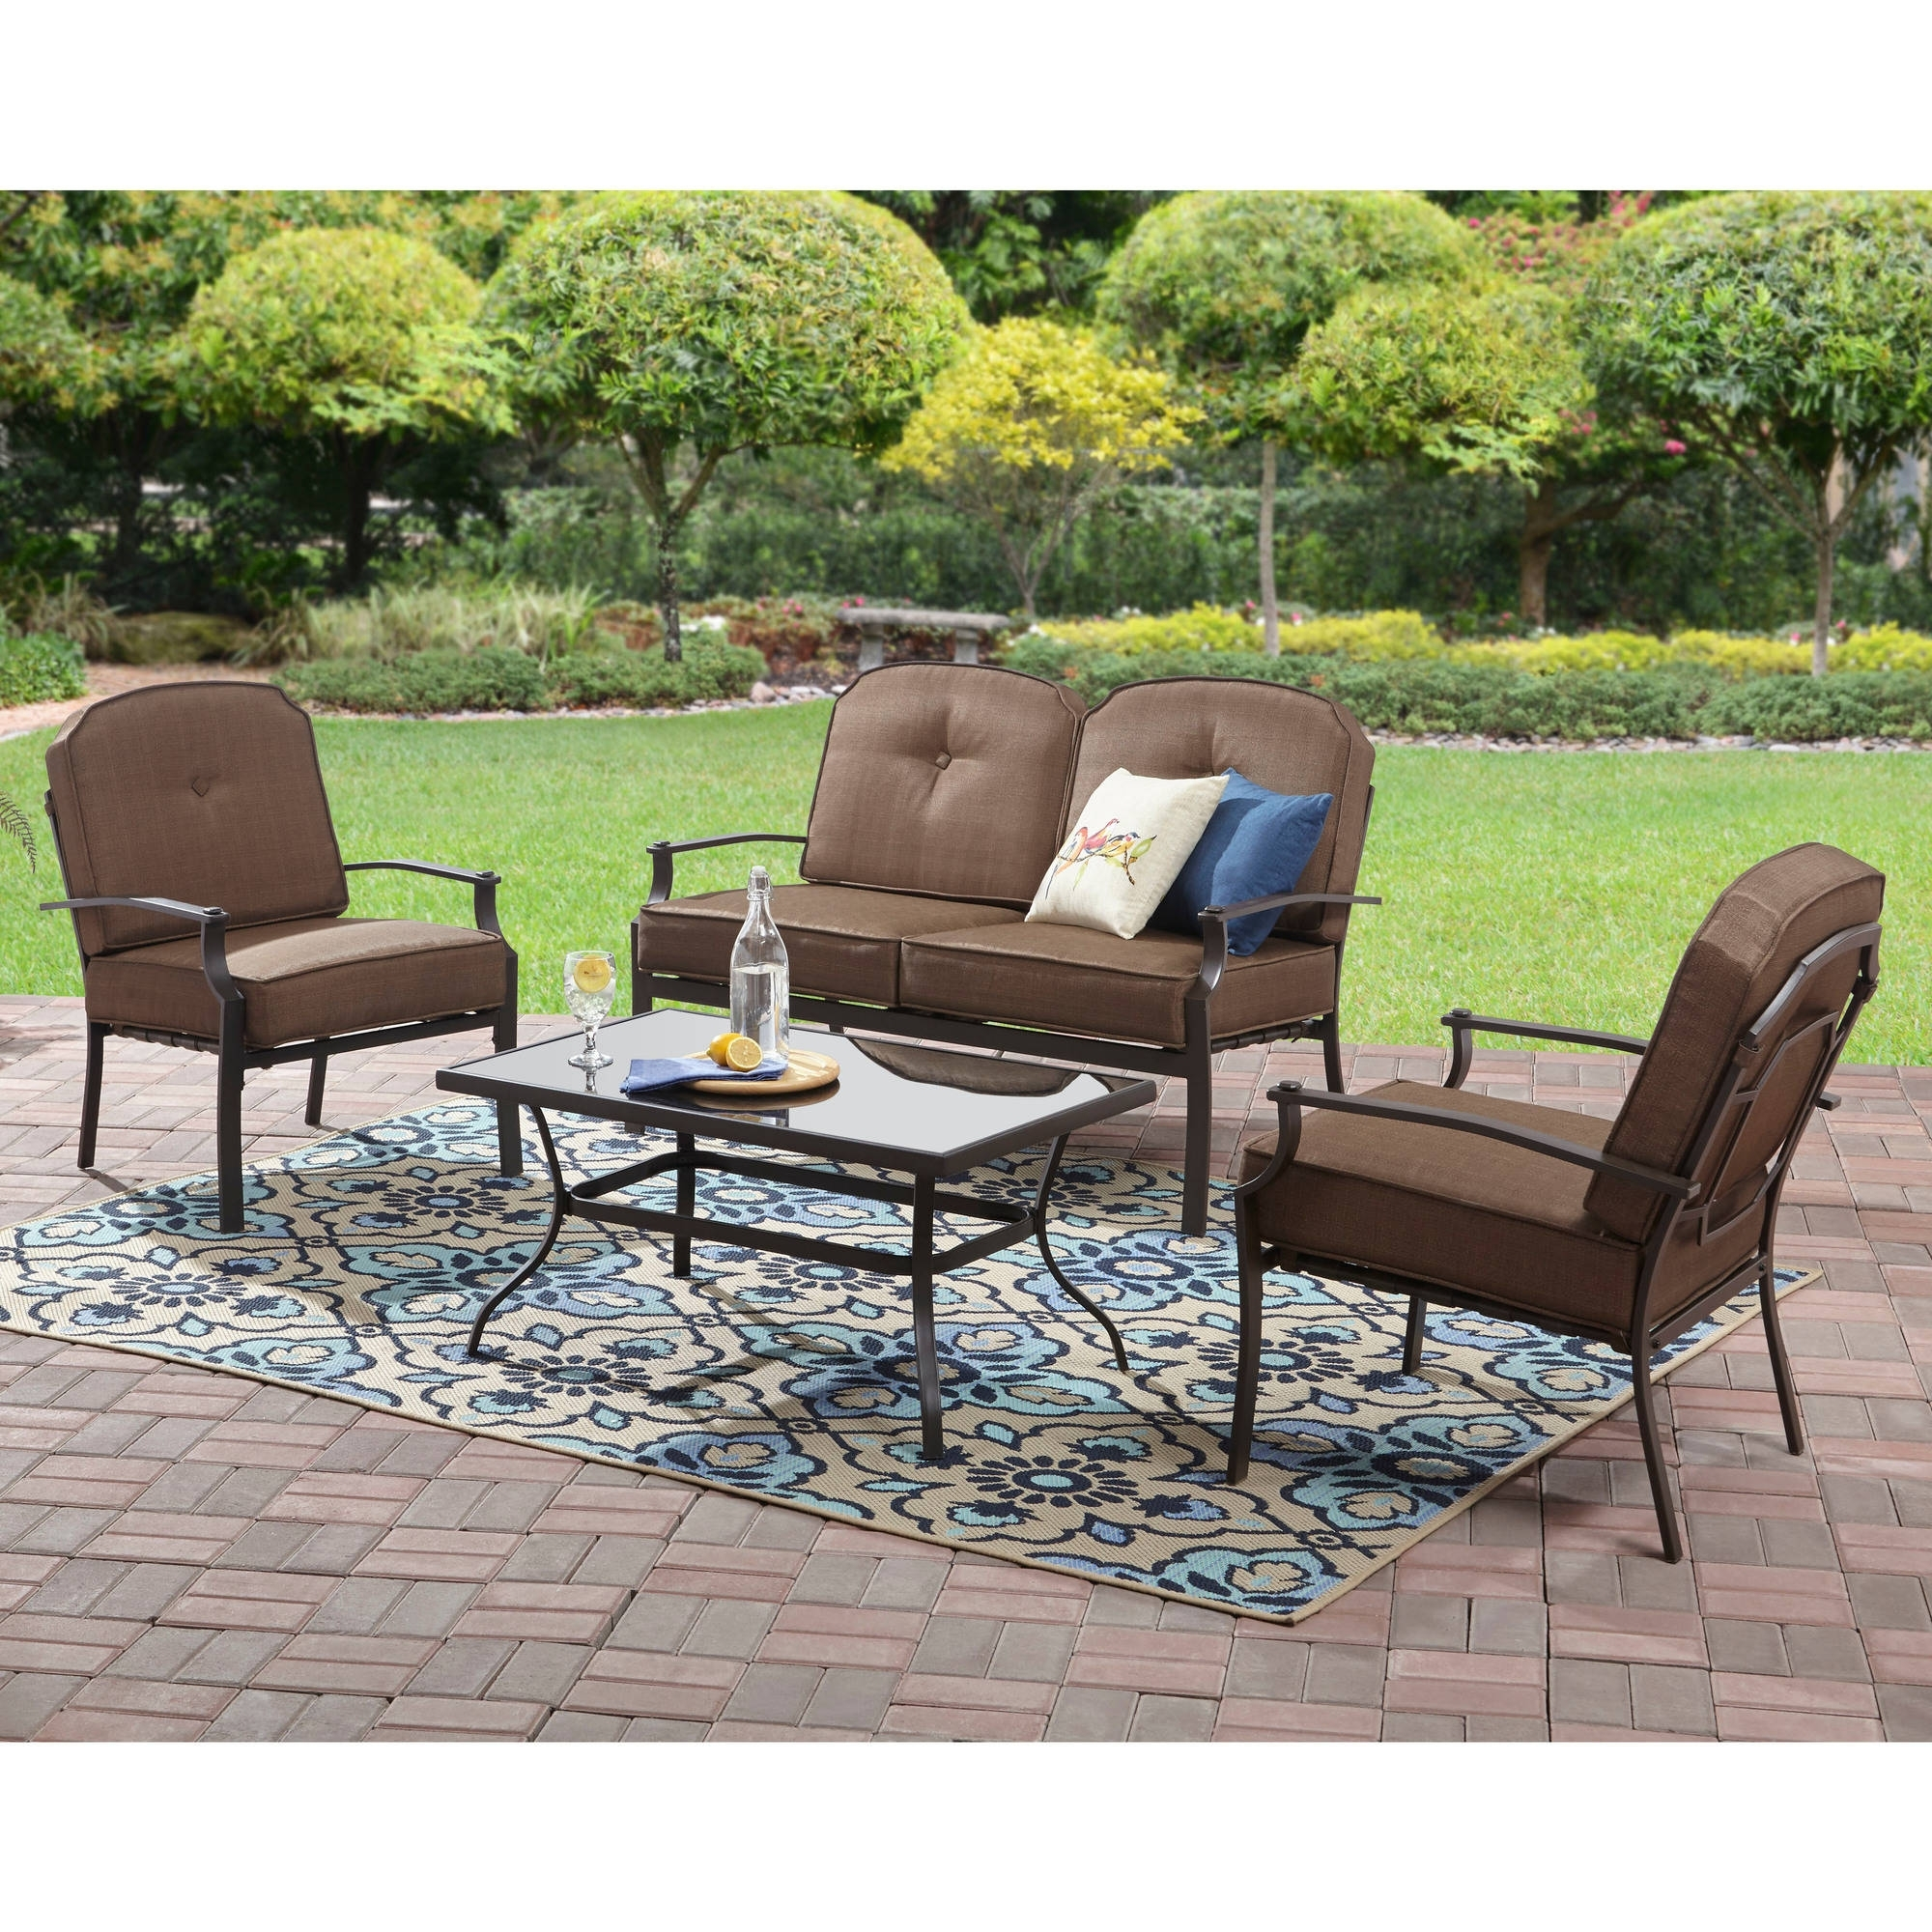 Patio Furniture Conversation Sets At Home Depot Inside Fashionable Average Cost Of Concrete Patio Tags : 4 Piece Conversation Set Patio (View 7 of 20)